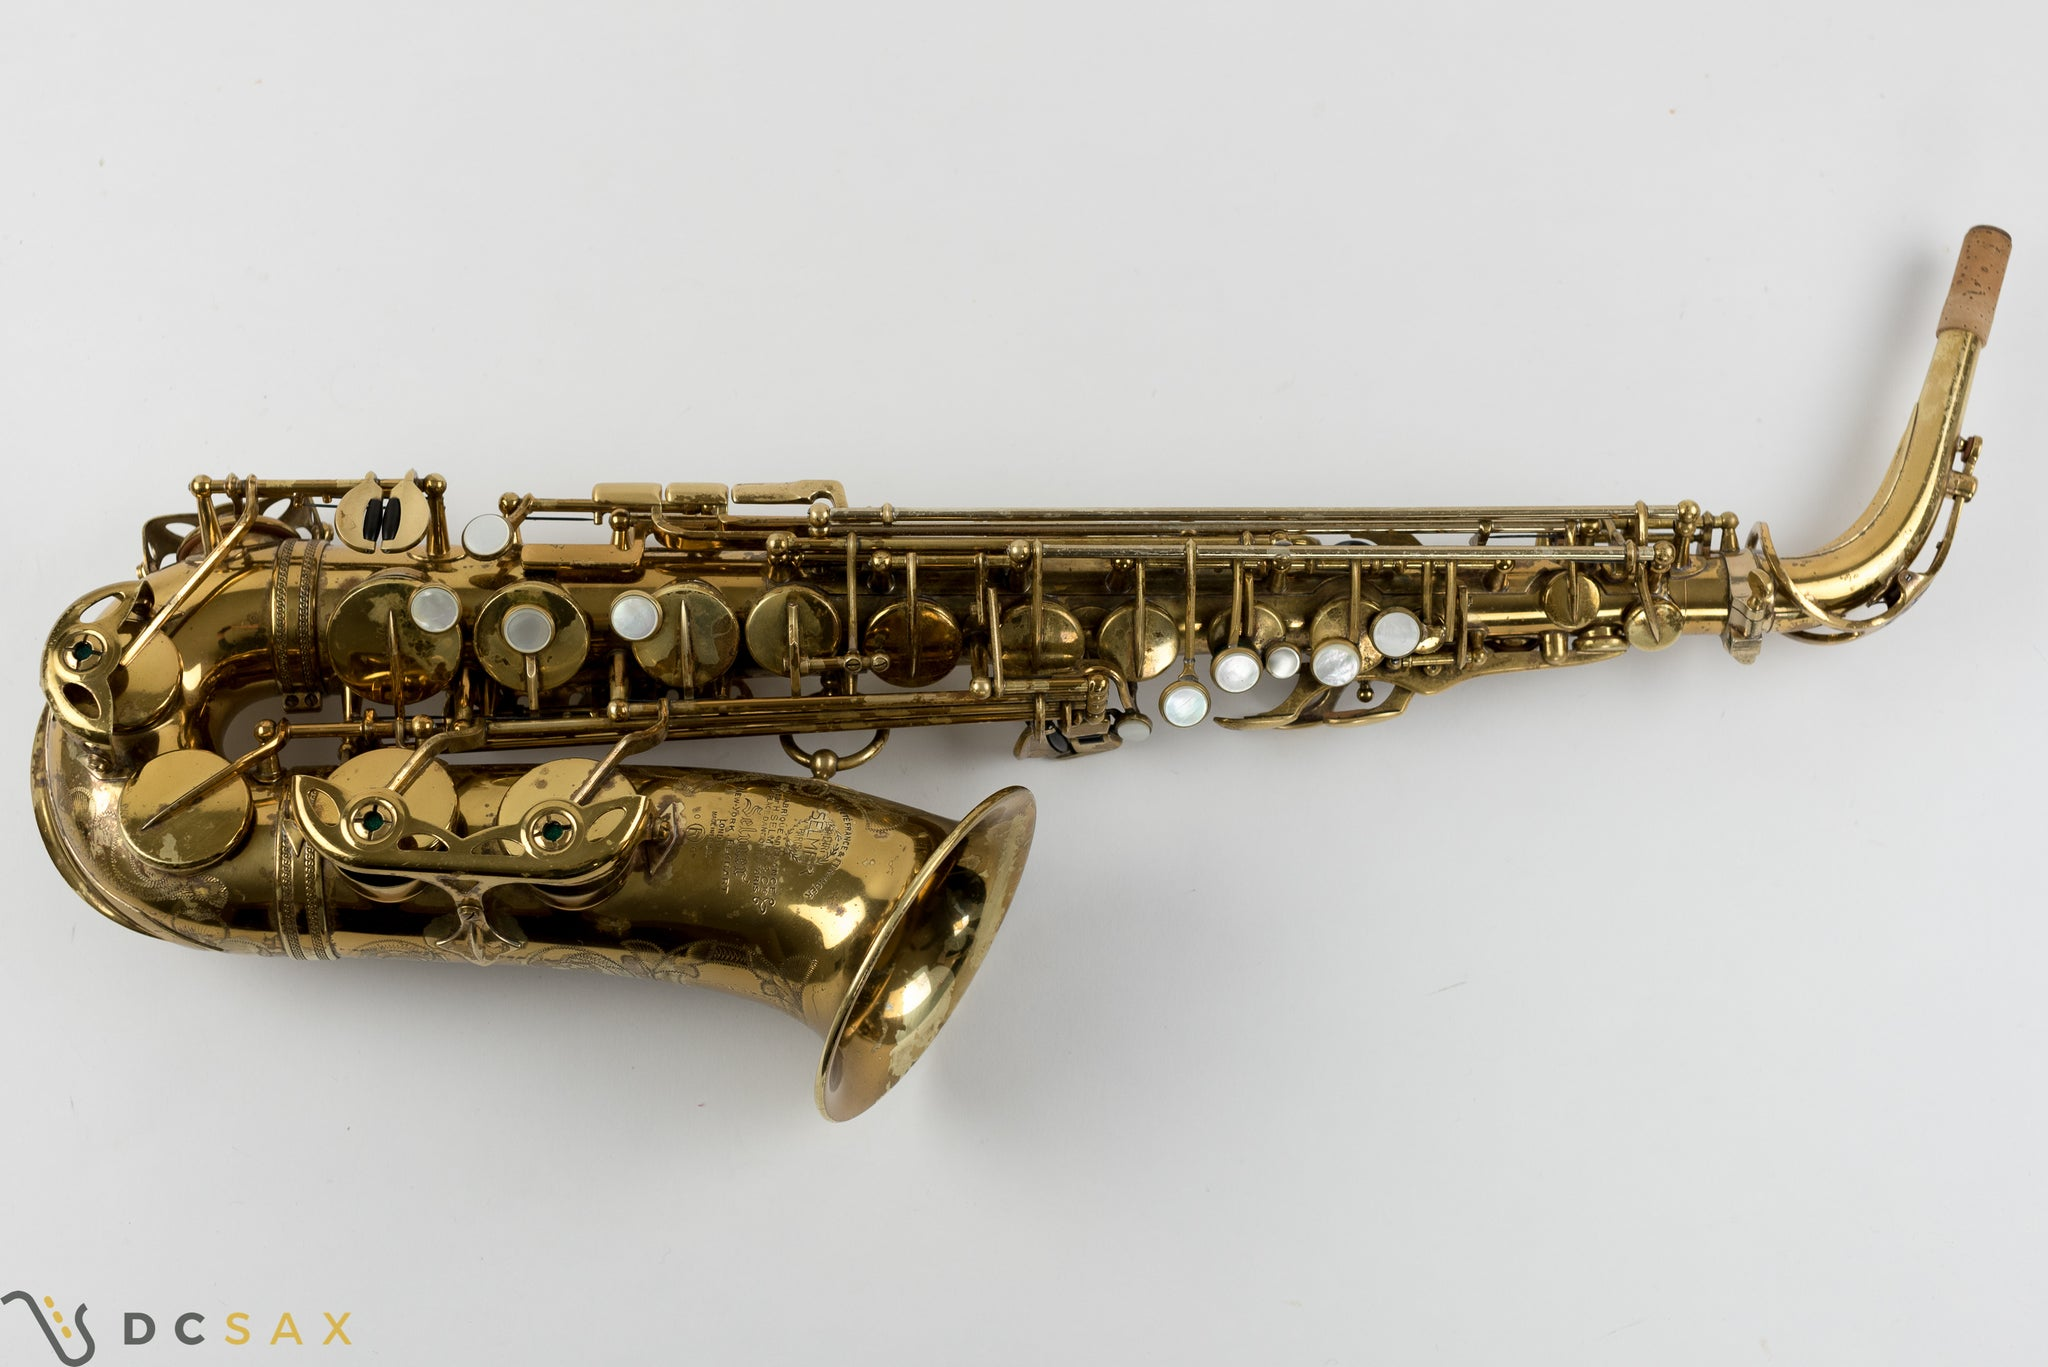 87,xxx Selmer Mark VI Alto Saxophone, 90% Original Lacquer, Medium Bow, Overhaul, Video